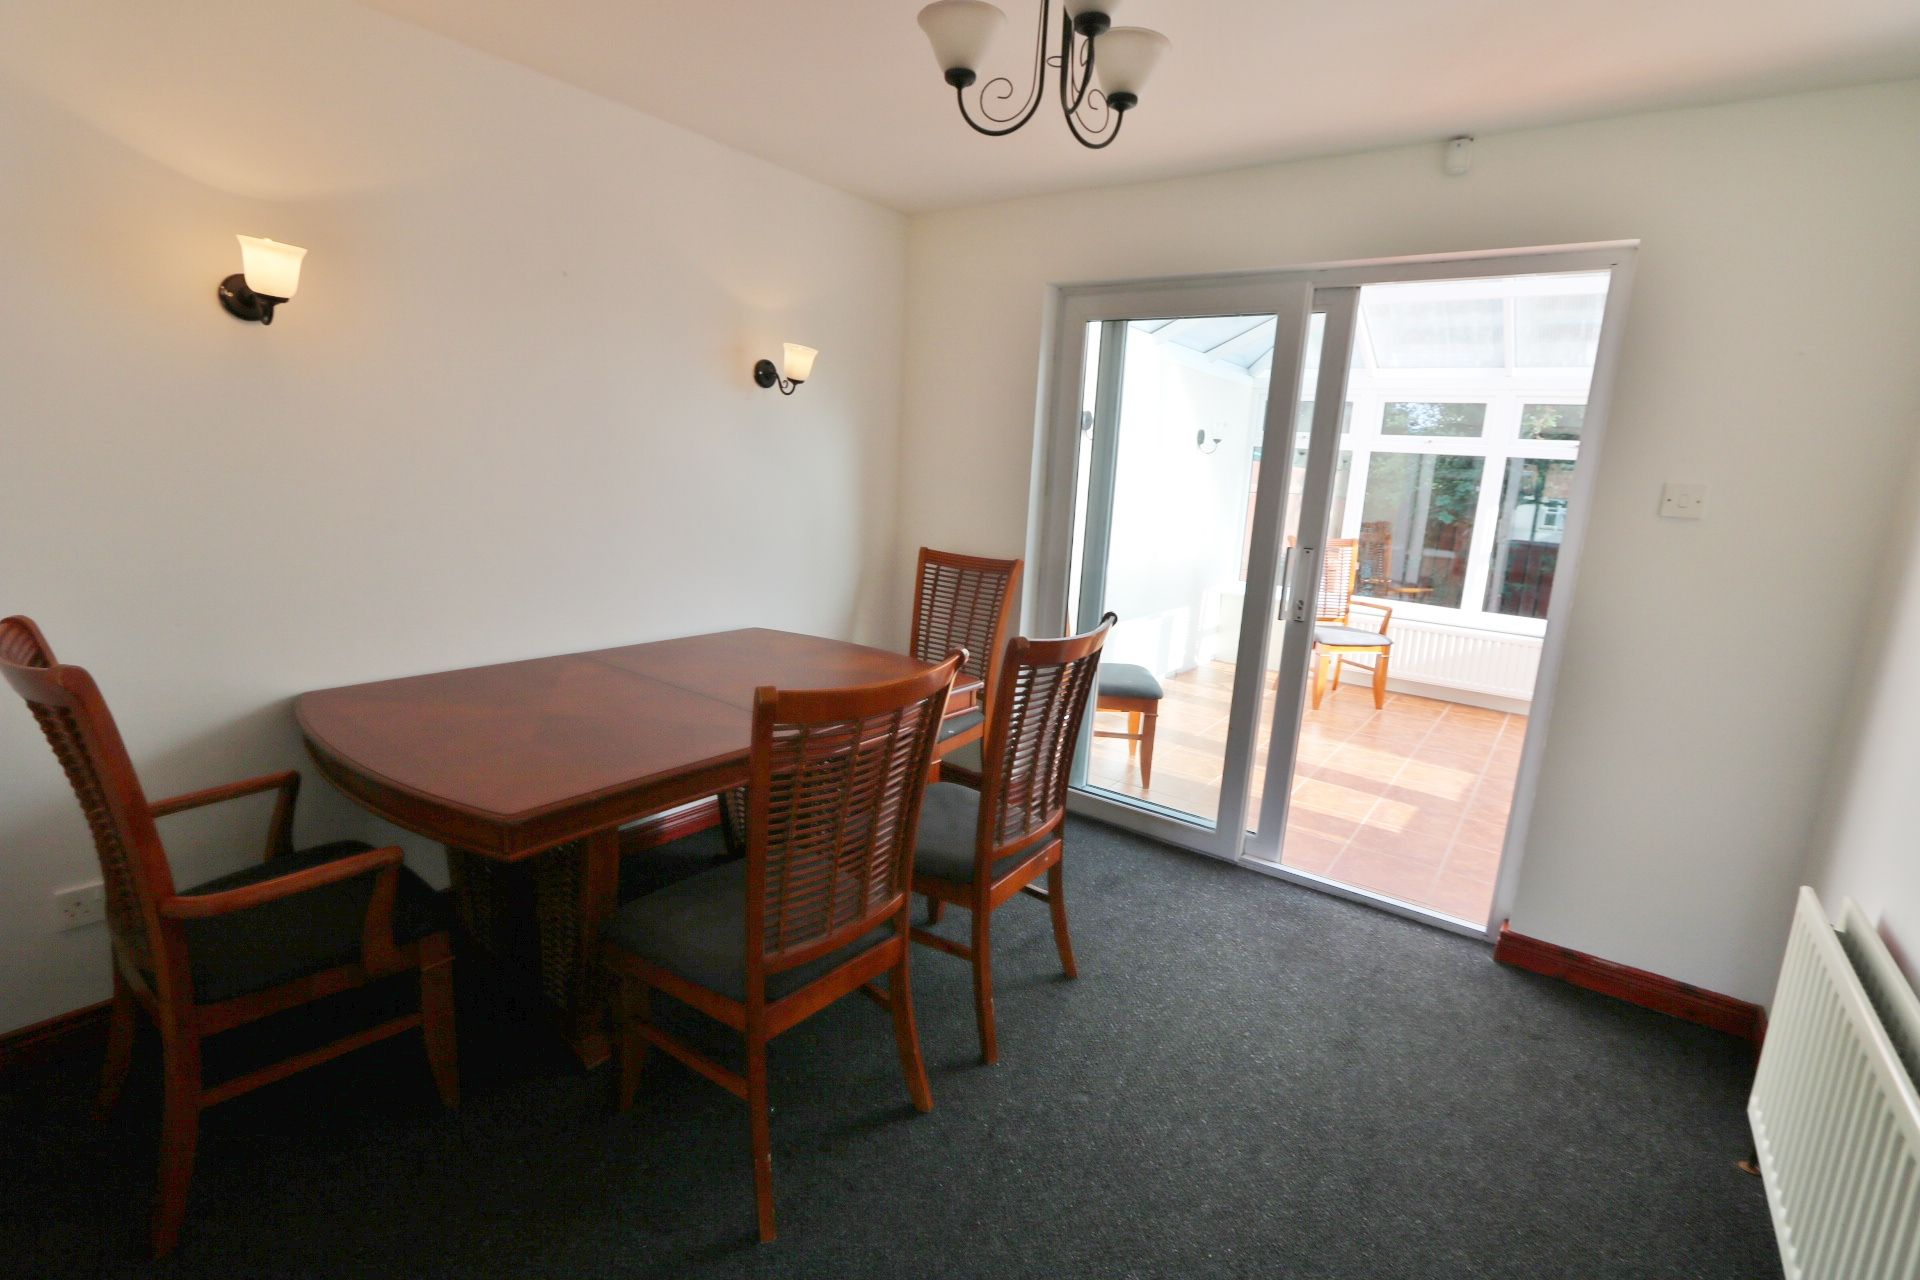 4 bedroom semi-detached house For Sale in Antrim - Photograph 4